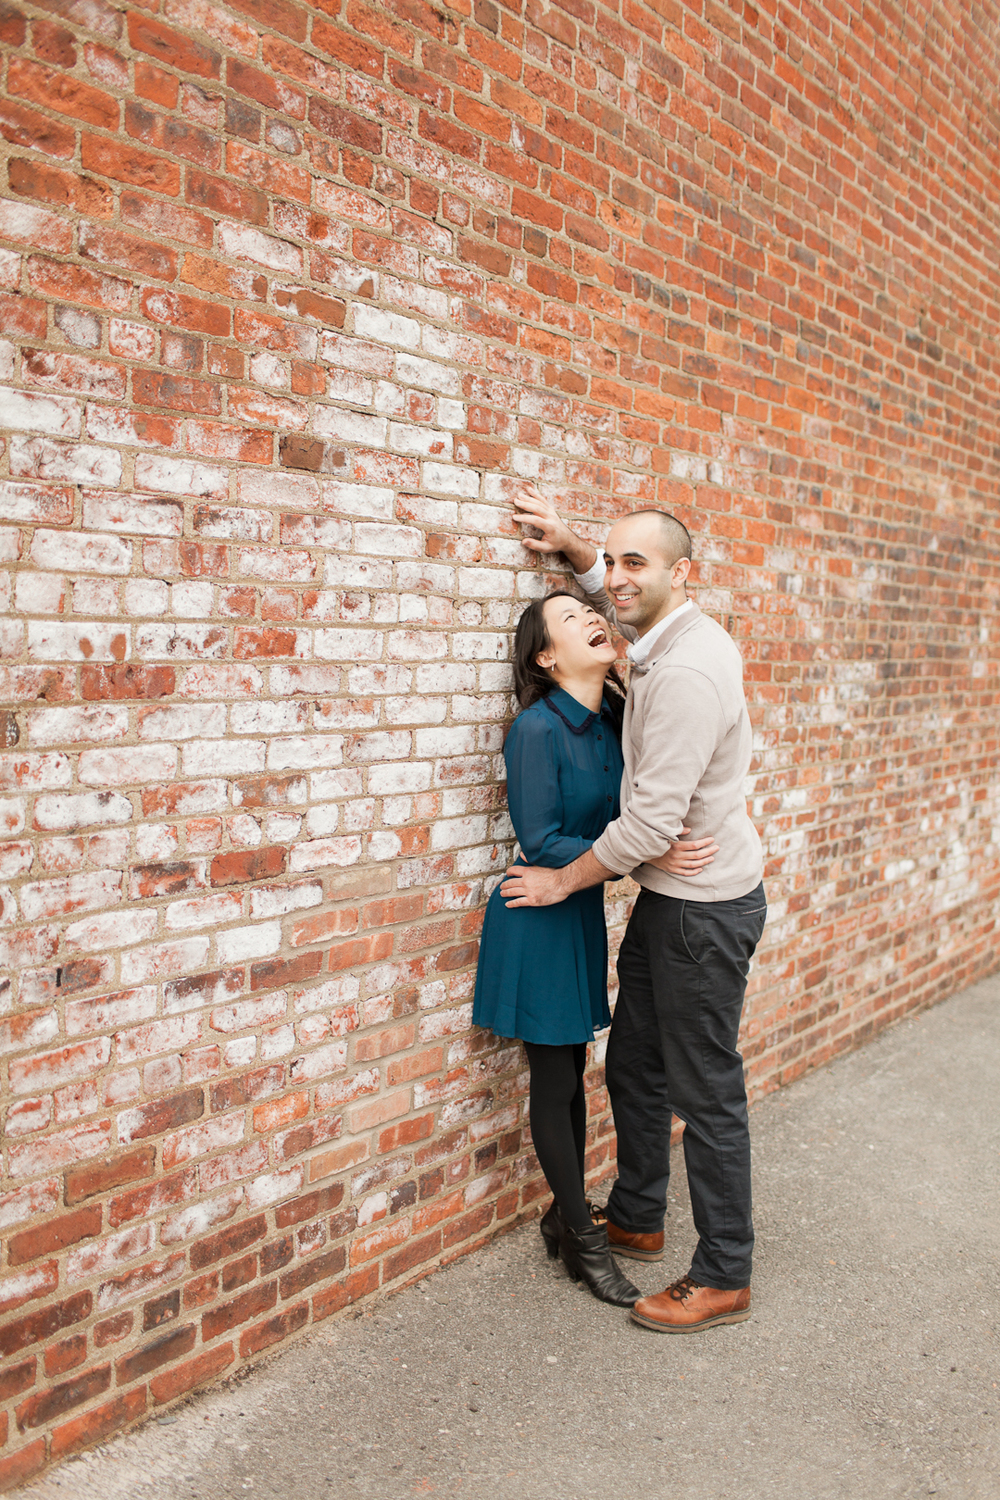 Melissa Kruse Photography - Kristine & David Engagement Photos-72.jpg